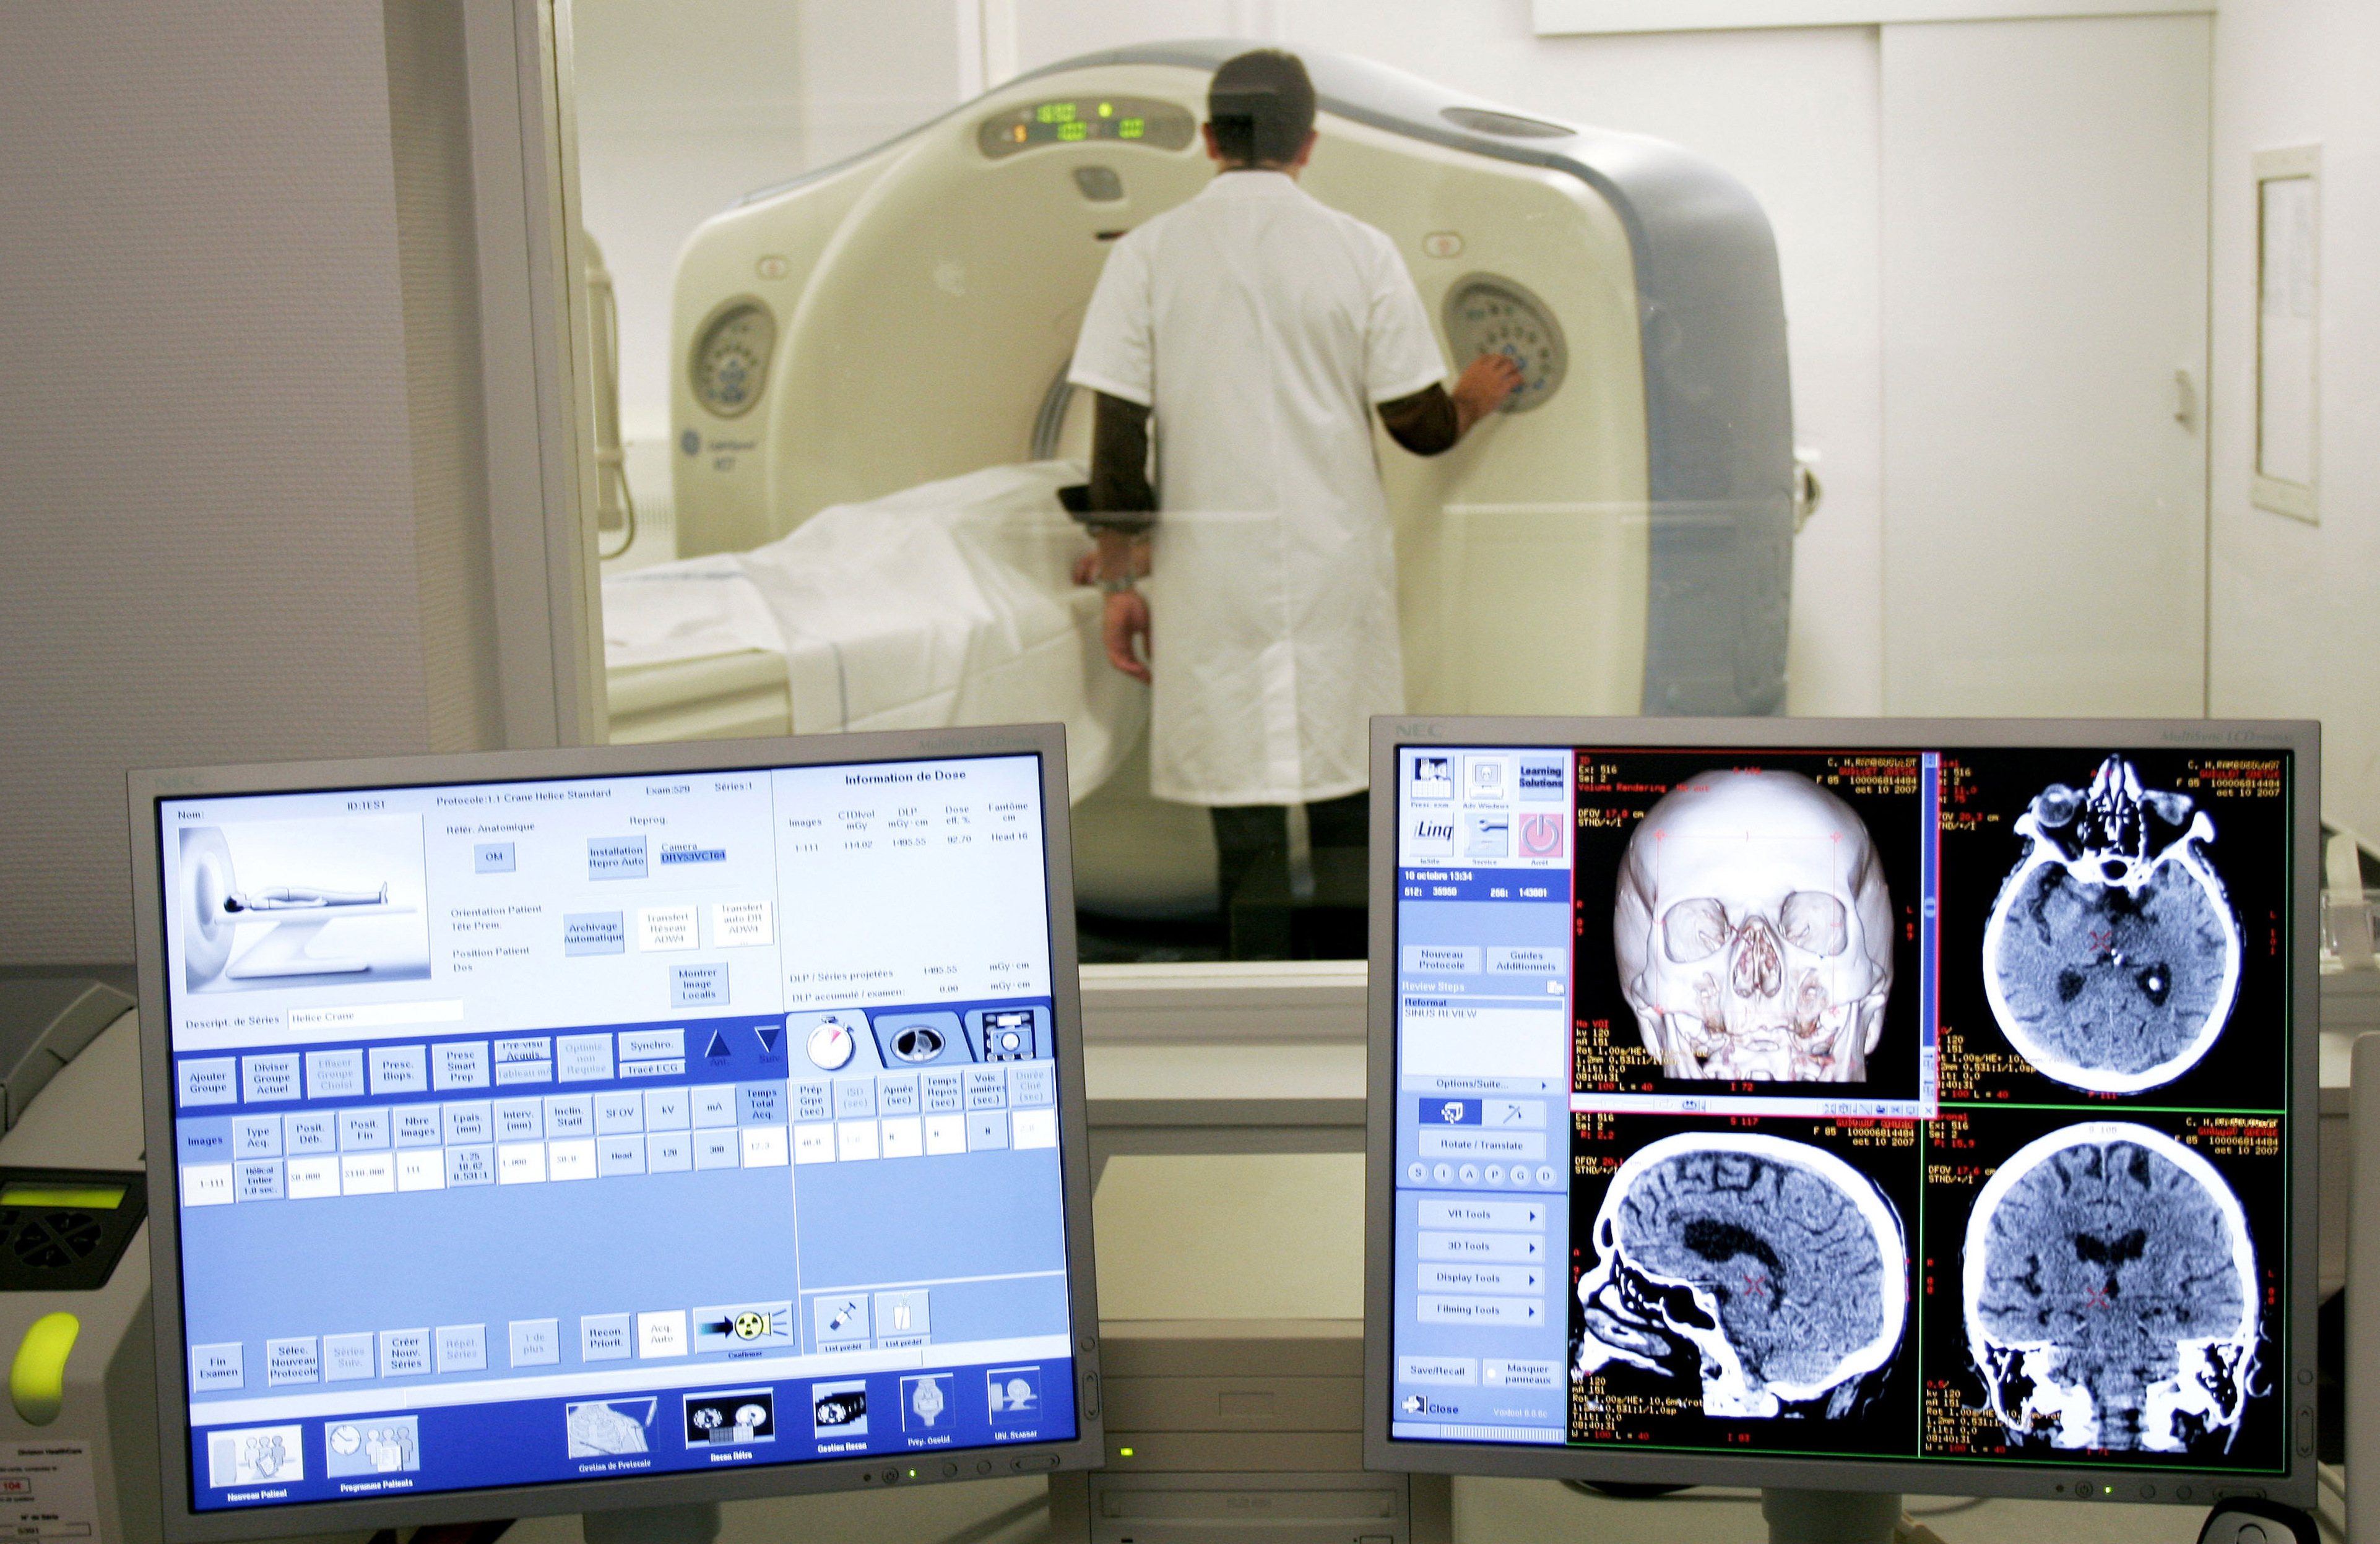 Millions of Americans' medical images and data left 'unprotected' online, investigation reveals